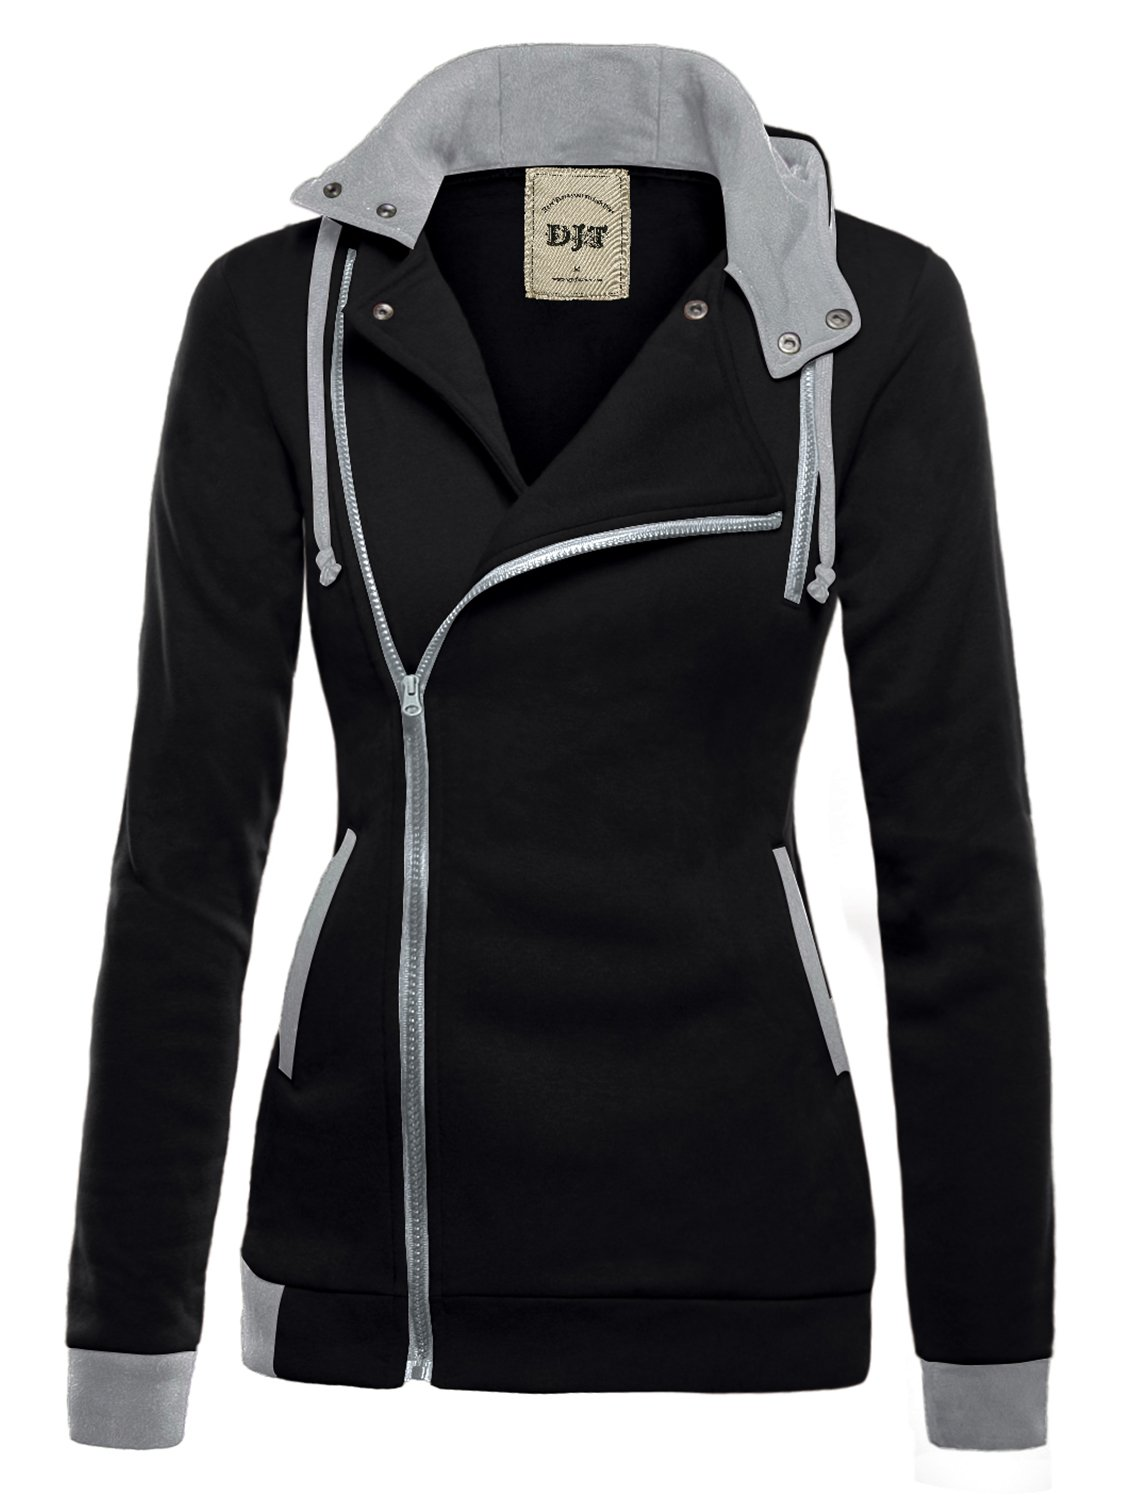 DJT Womens Oblique Zipper Slim Fit Hoodie Jacket Small Black